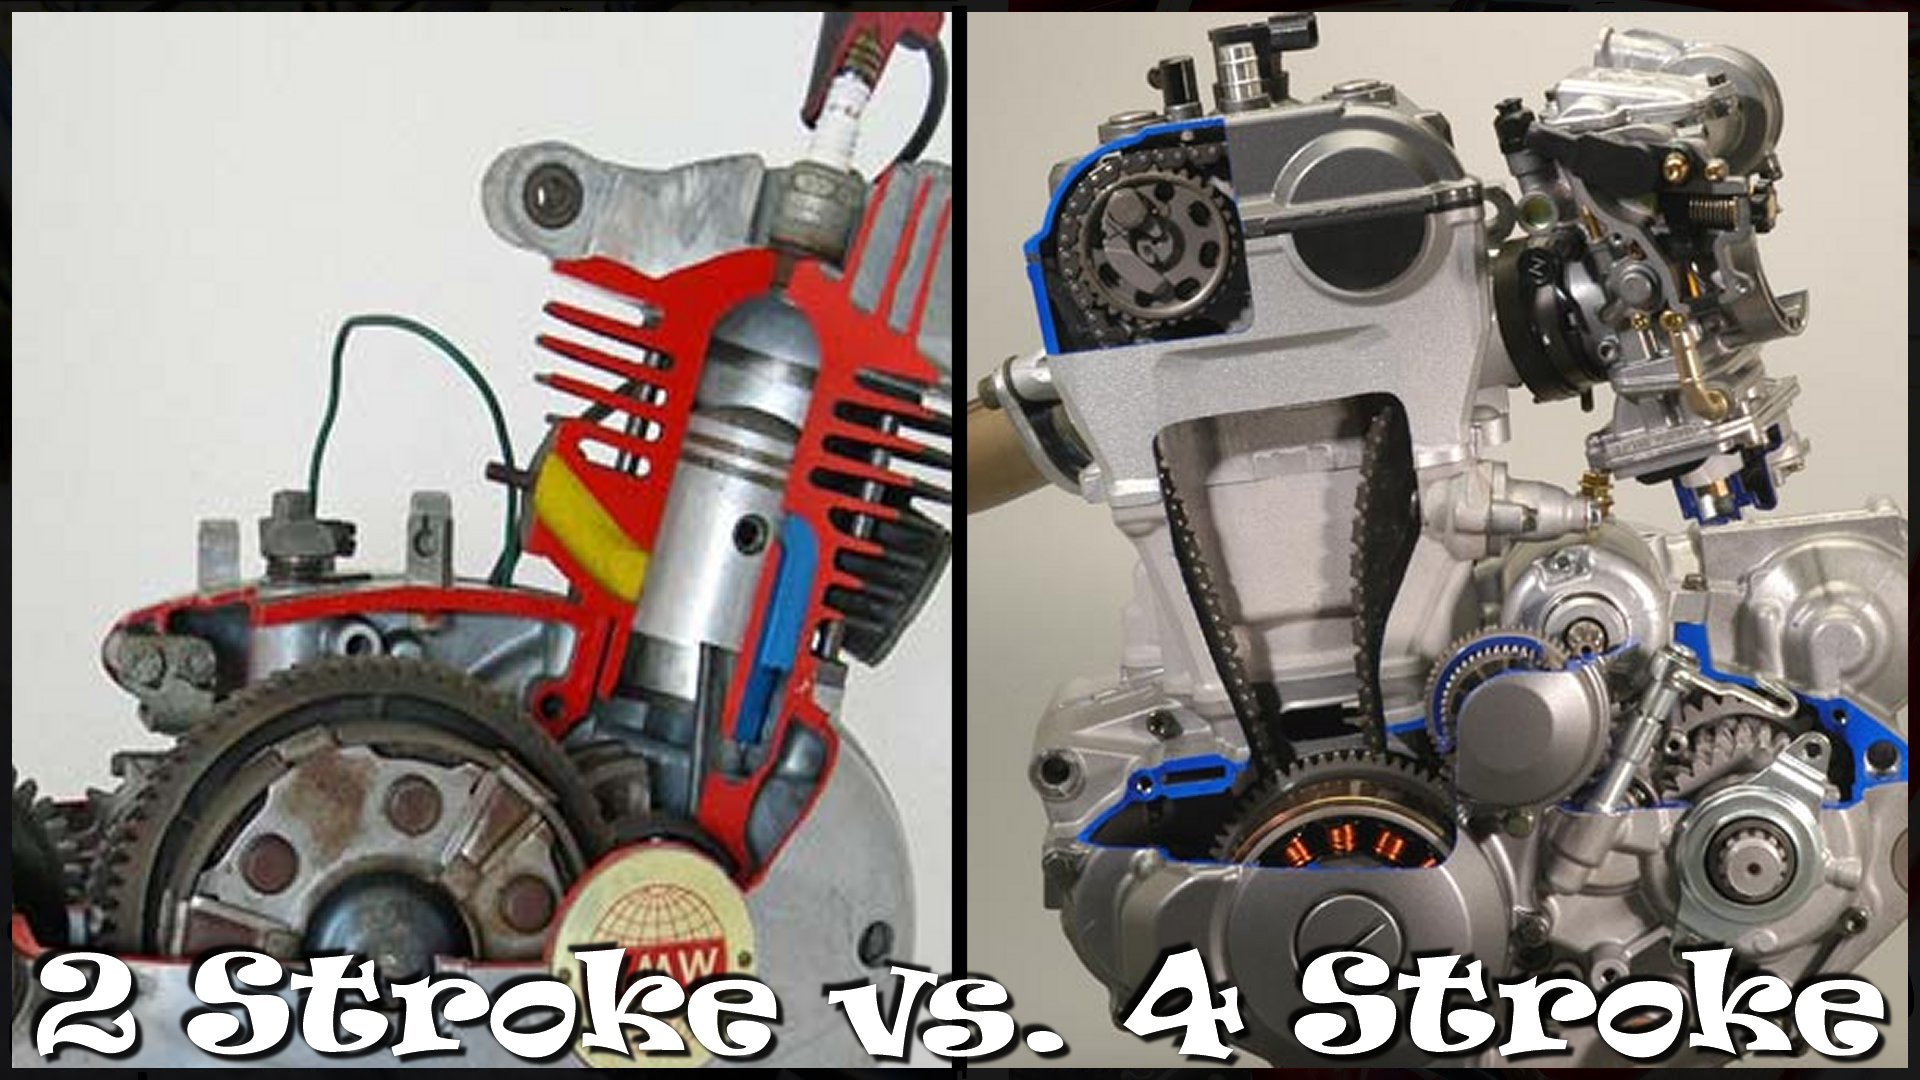 4 Stroke Vs 2 Stroke Dirt Bike - Bicycling and the Best ...